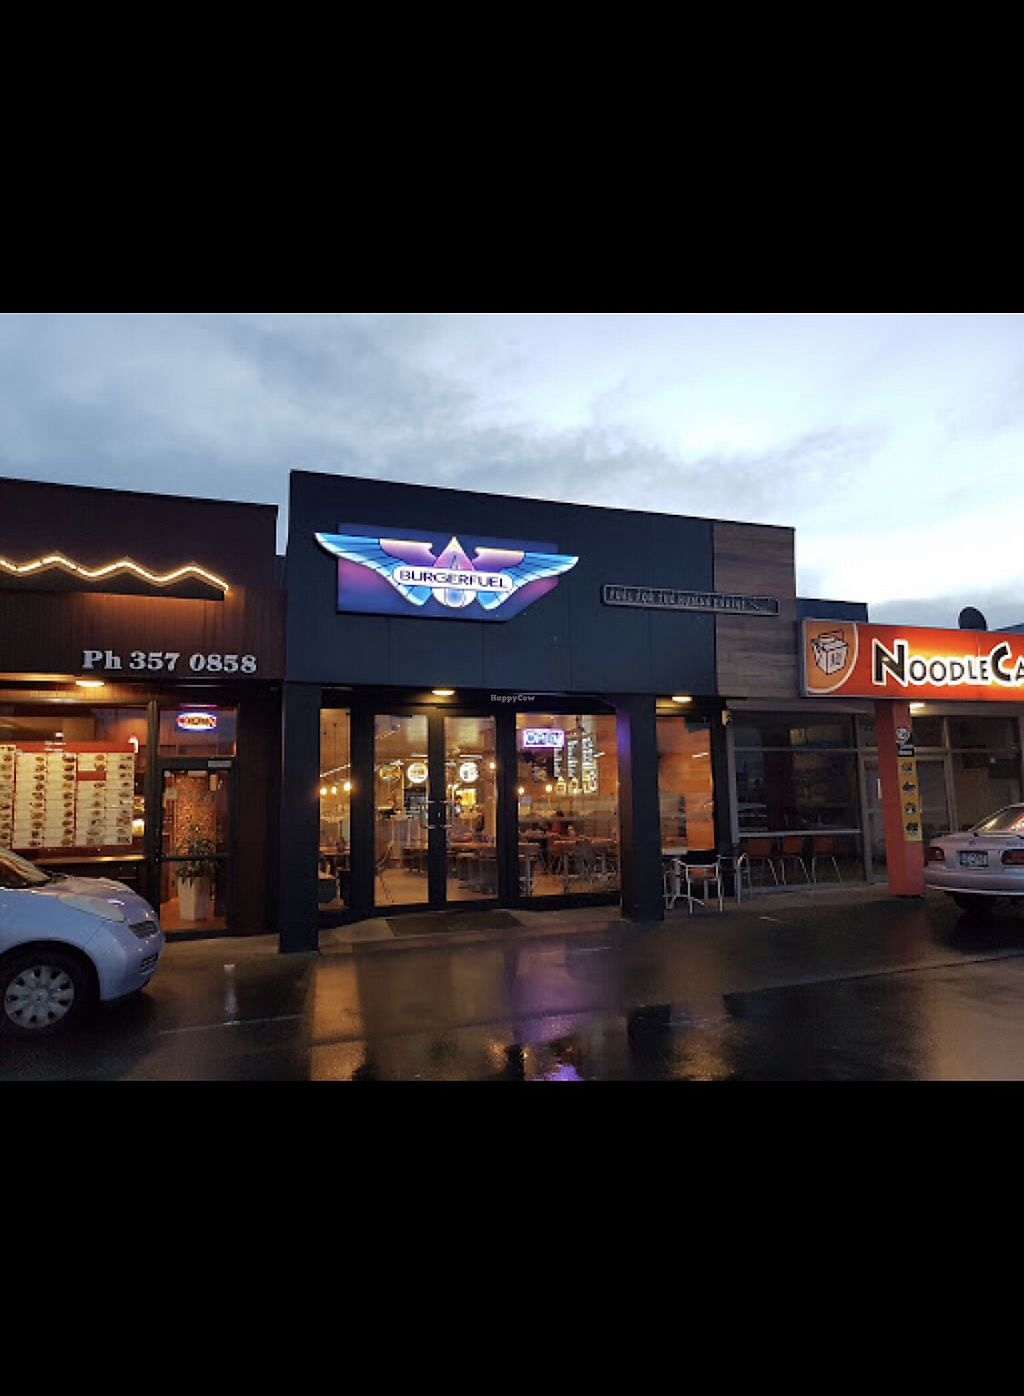 """Photo of BurgerFuel  by <a href=""""/members/profile/CoreySaunders"""">CoreySaunders</a> <br/> Burger fuel Palmerston North  <br/> February 1, 2018  - <a href='/contact/abuse/image/110951/353763'>Report</a>"""